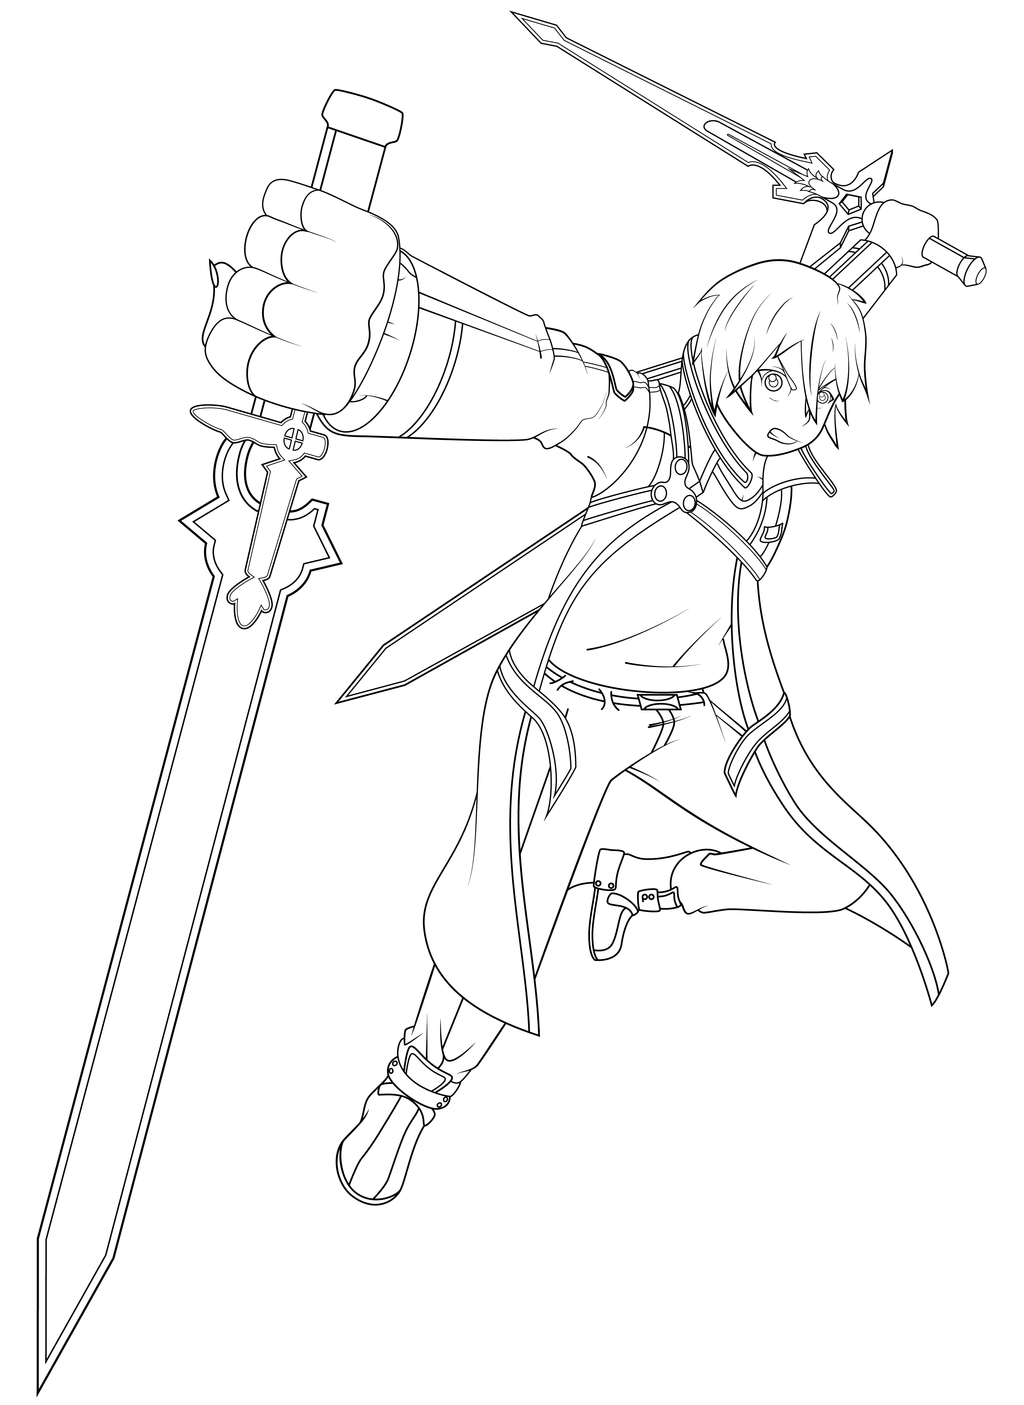 anime girl with swords coloring pages | Kirito - Sword Art Online by Lanky-Nathan on DeviantArt